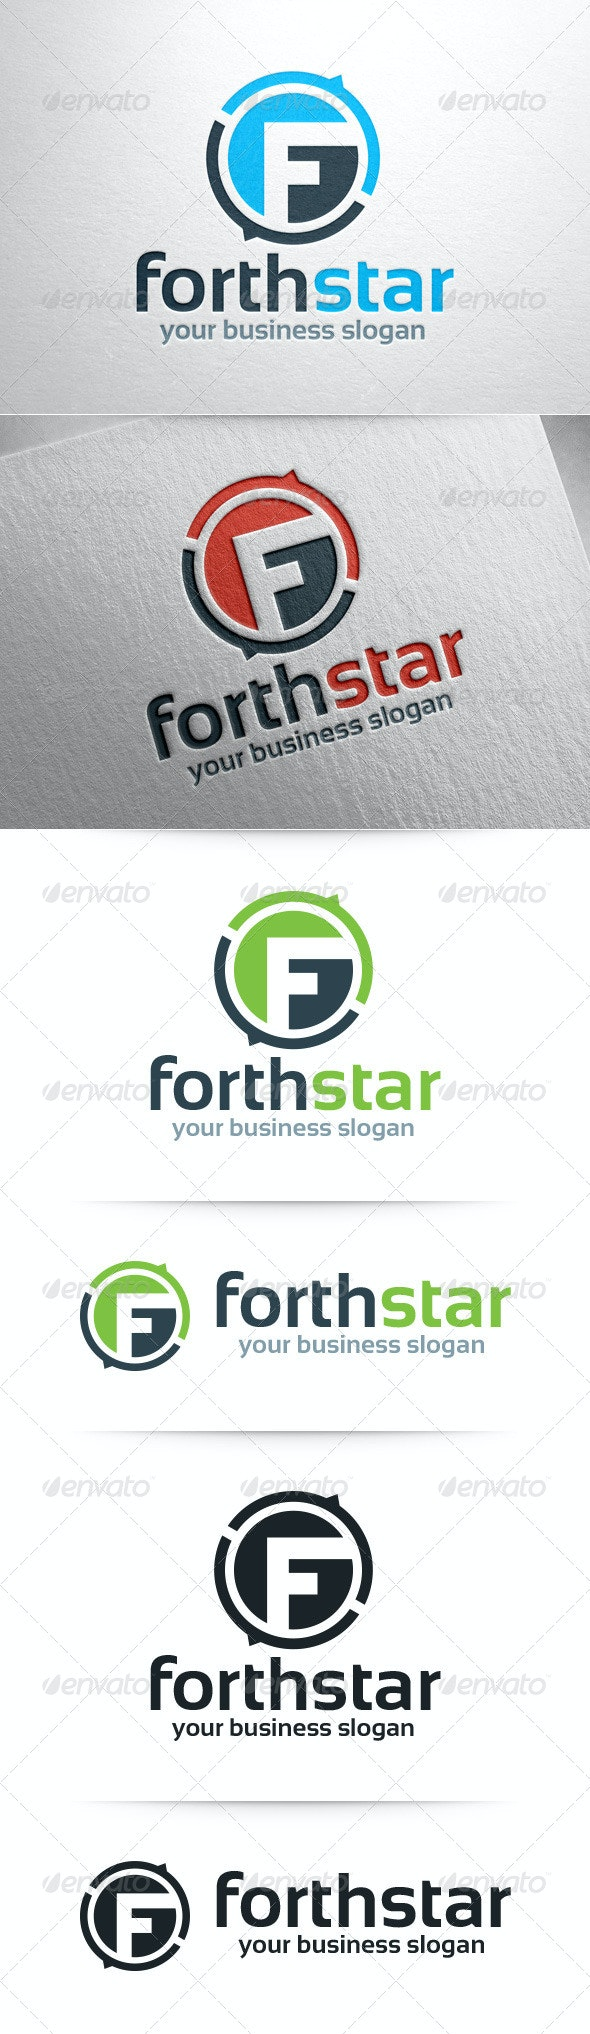 Forthstar - Letter F Logo Template - Letters Logo Templates